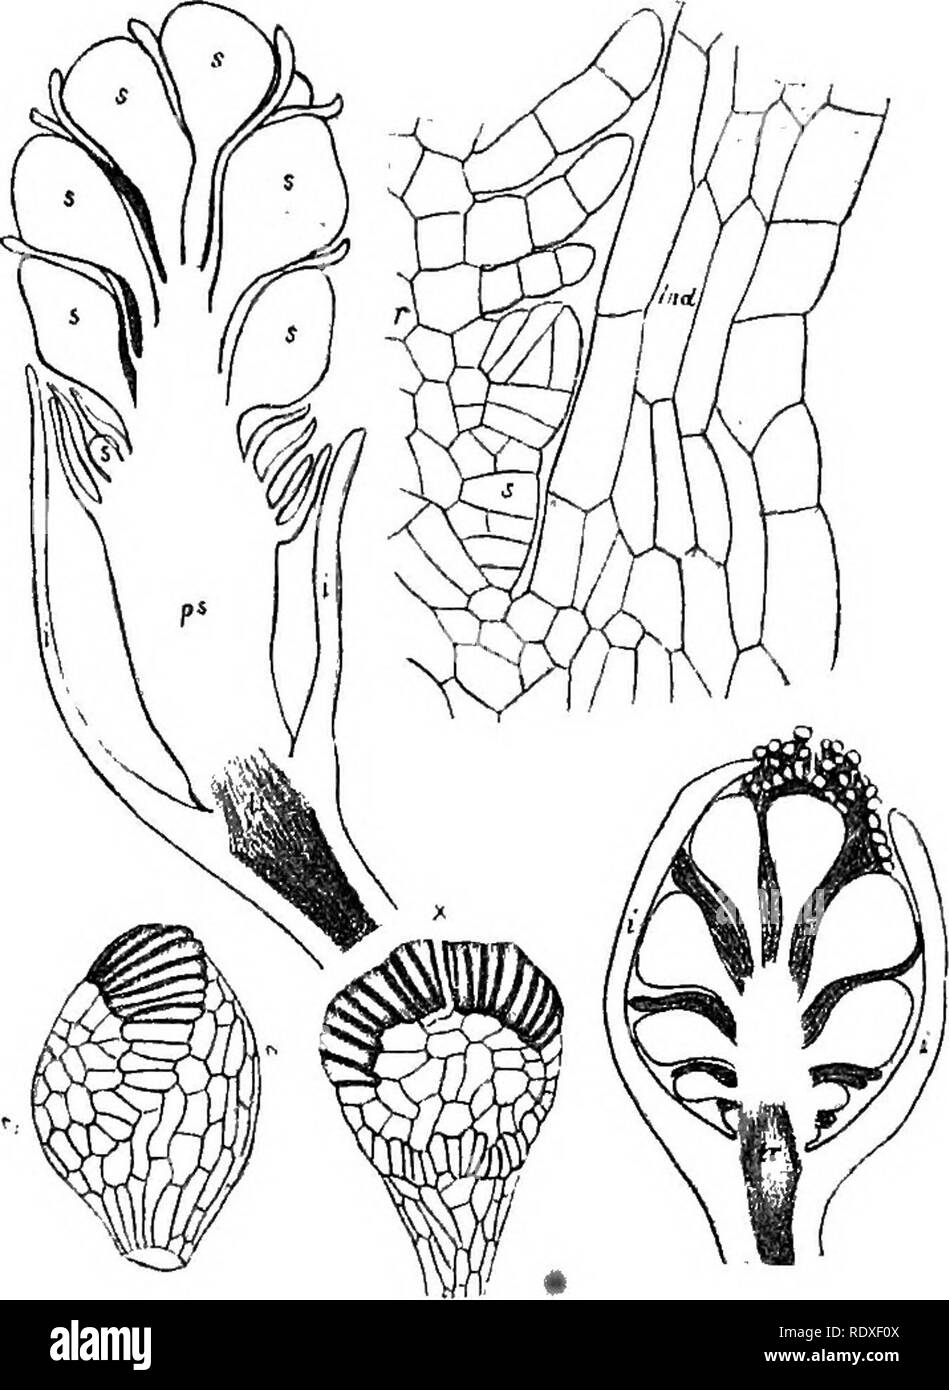 . The origin of a land flora, a theory based upon the facts of alternation. Plant morphology. 572 FILICALES of Gleichenia, it is plain that the sporangia are of the same type, as regards the position of the annulus, though differing in the details ; or the comparison might be extended to the Schizaeaceae on the one hand, or the Hymeno- phyllaceae on the other, as regards the position of the annulus. The longitudinal slit of dehiscence traverses the distal part of the annulus, following the .median plane of the sporangium, and may extend some distance down its peri- a b pheral side, so that it  - Stock Image